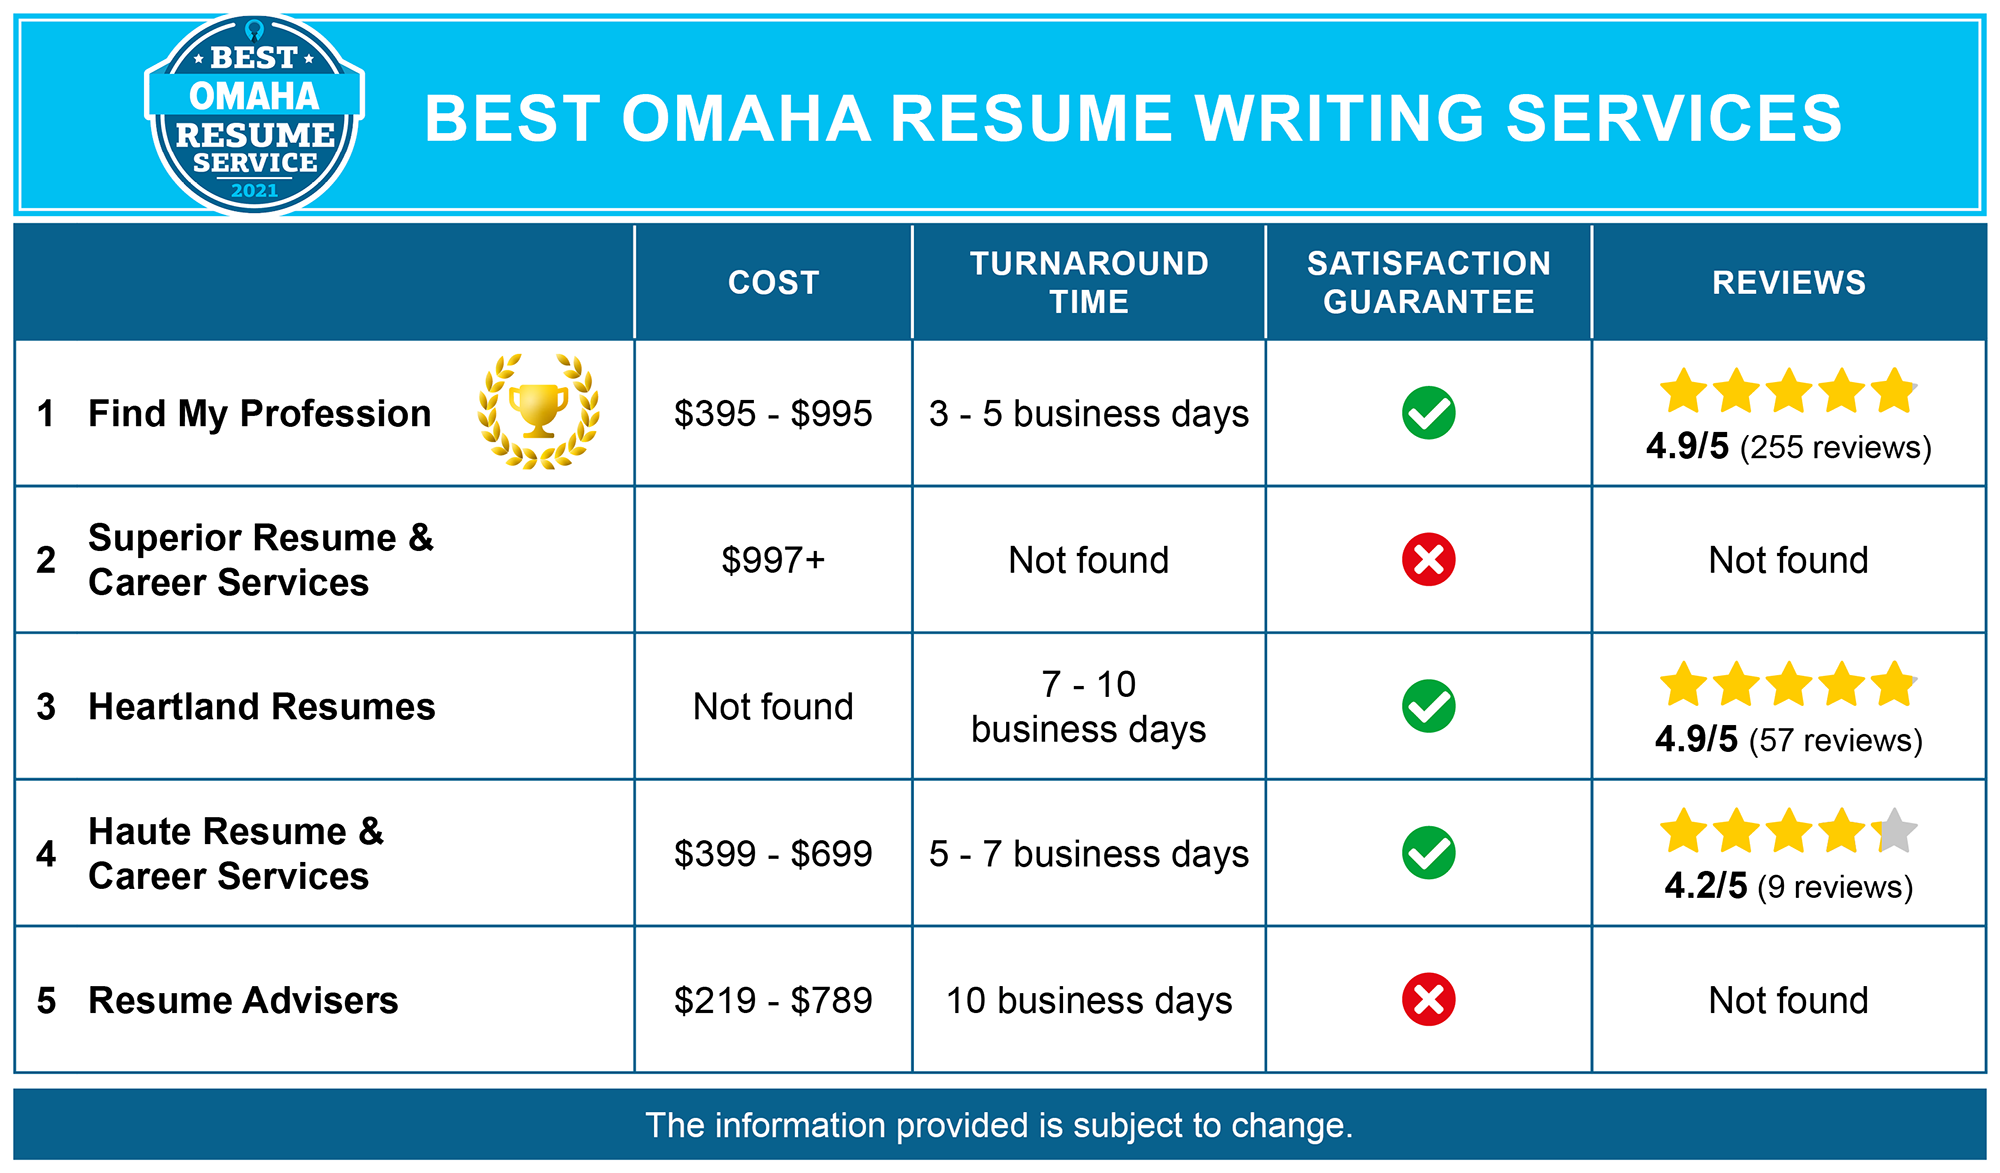 Best Omaha Resume Writing Services